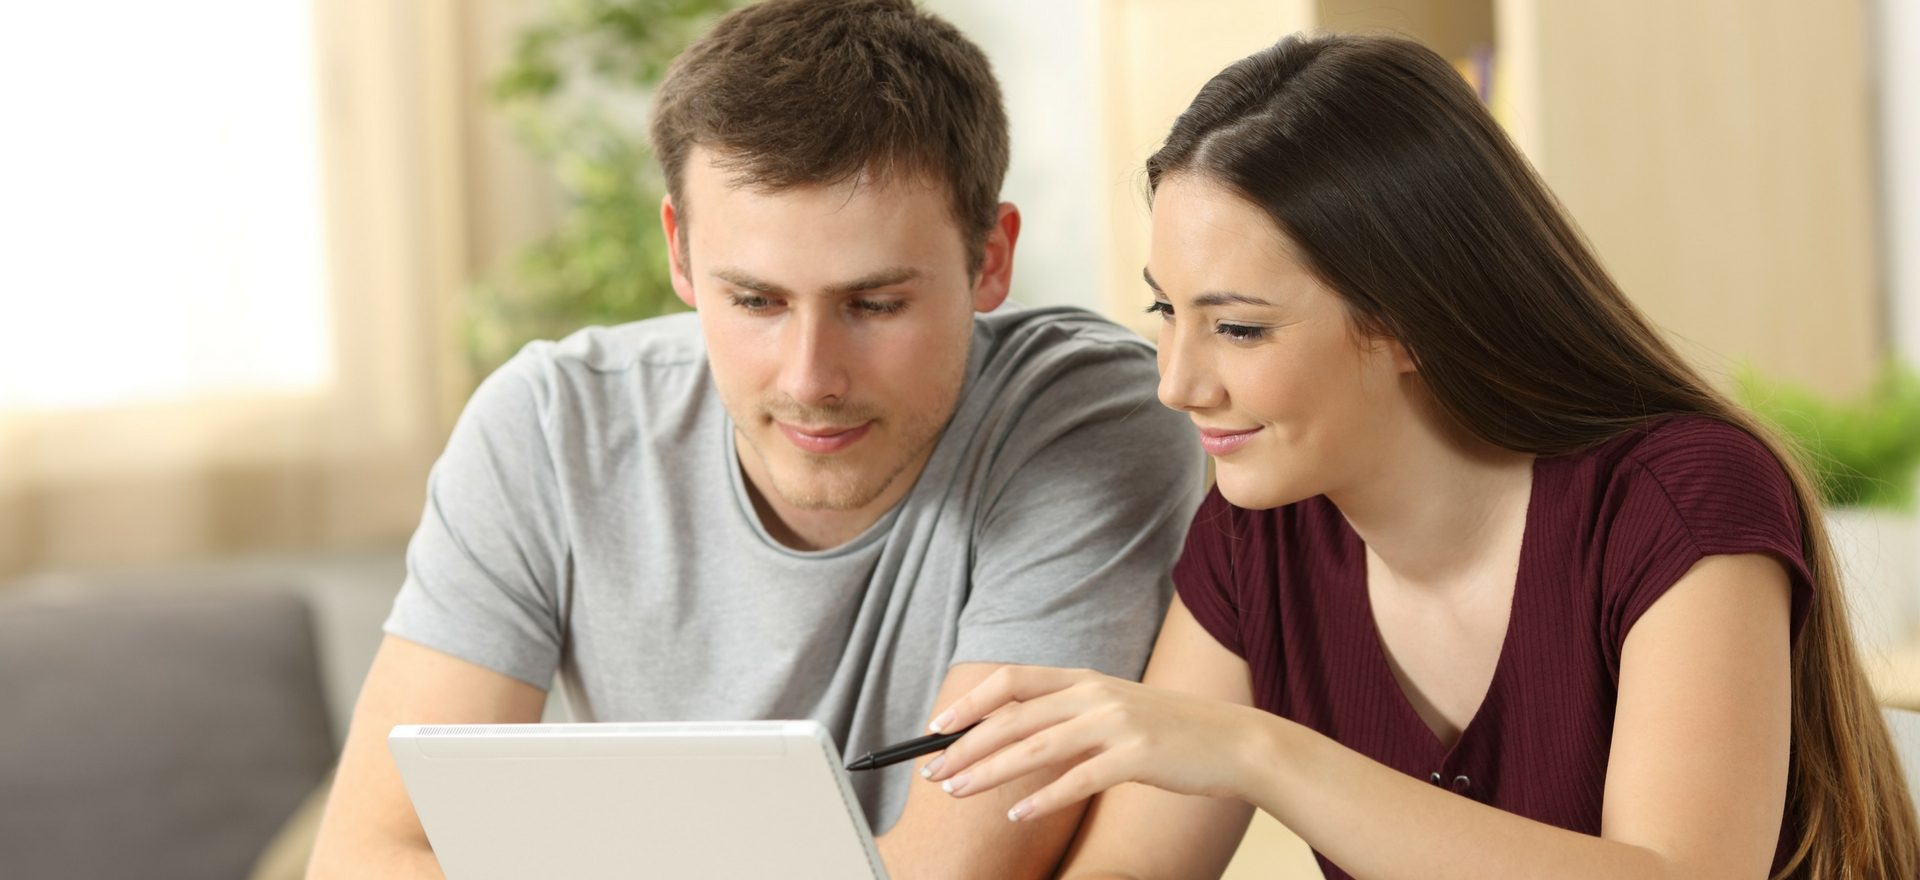 Male and Female at computer looking at finance application